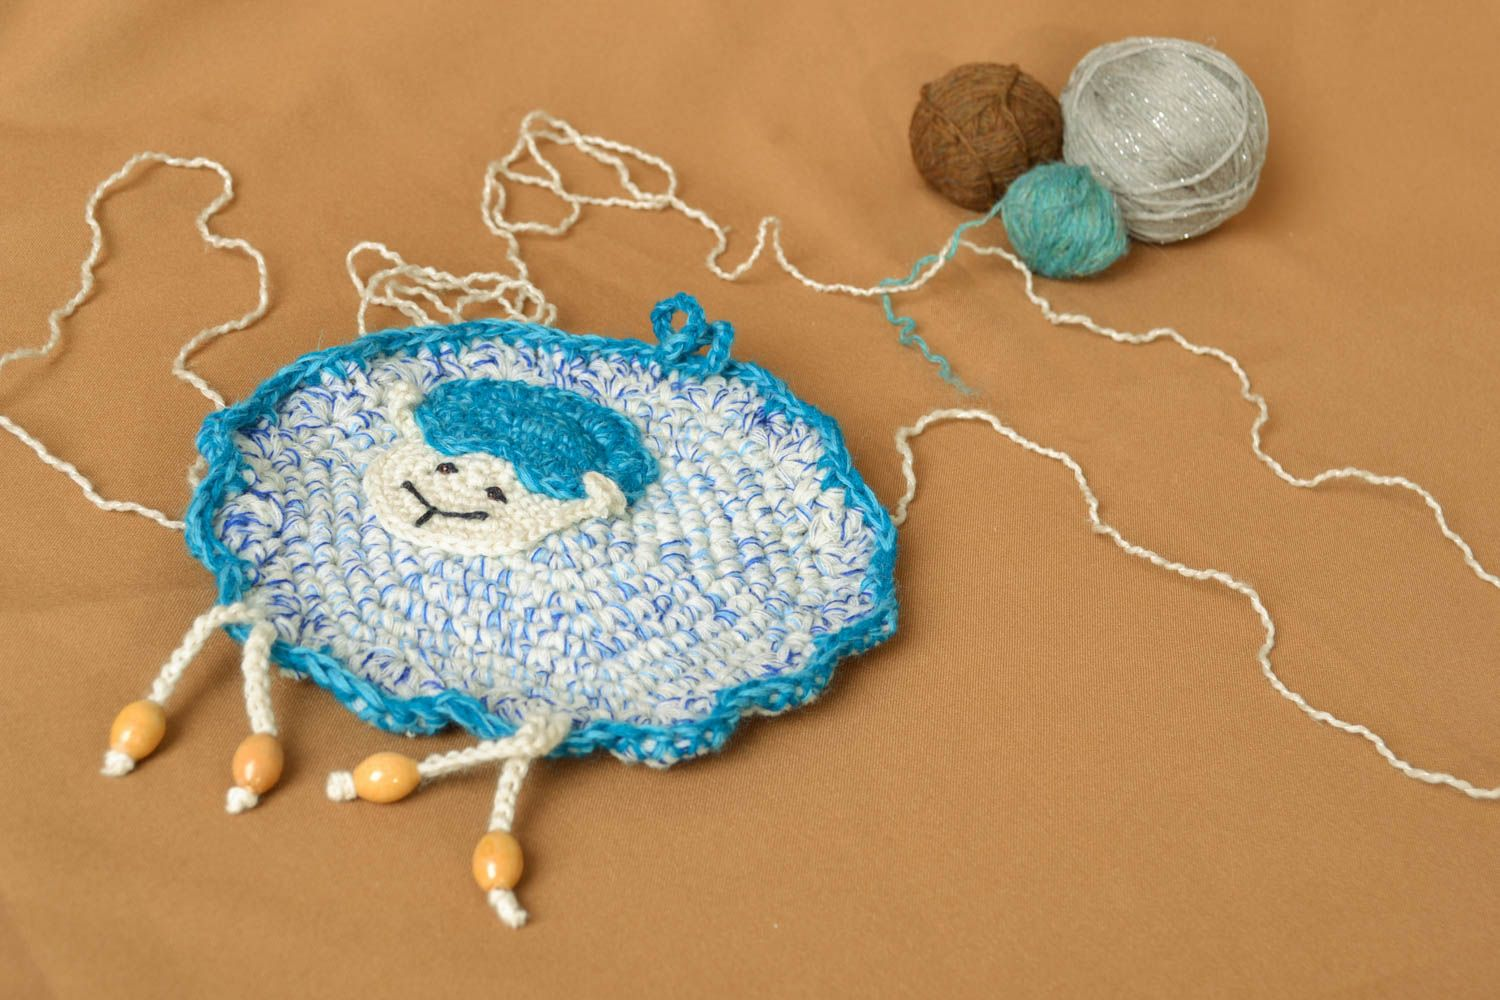 knitted toys Crochet pendant toy Sheep in Blue - MADEheart.com